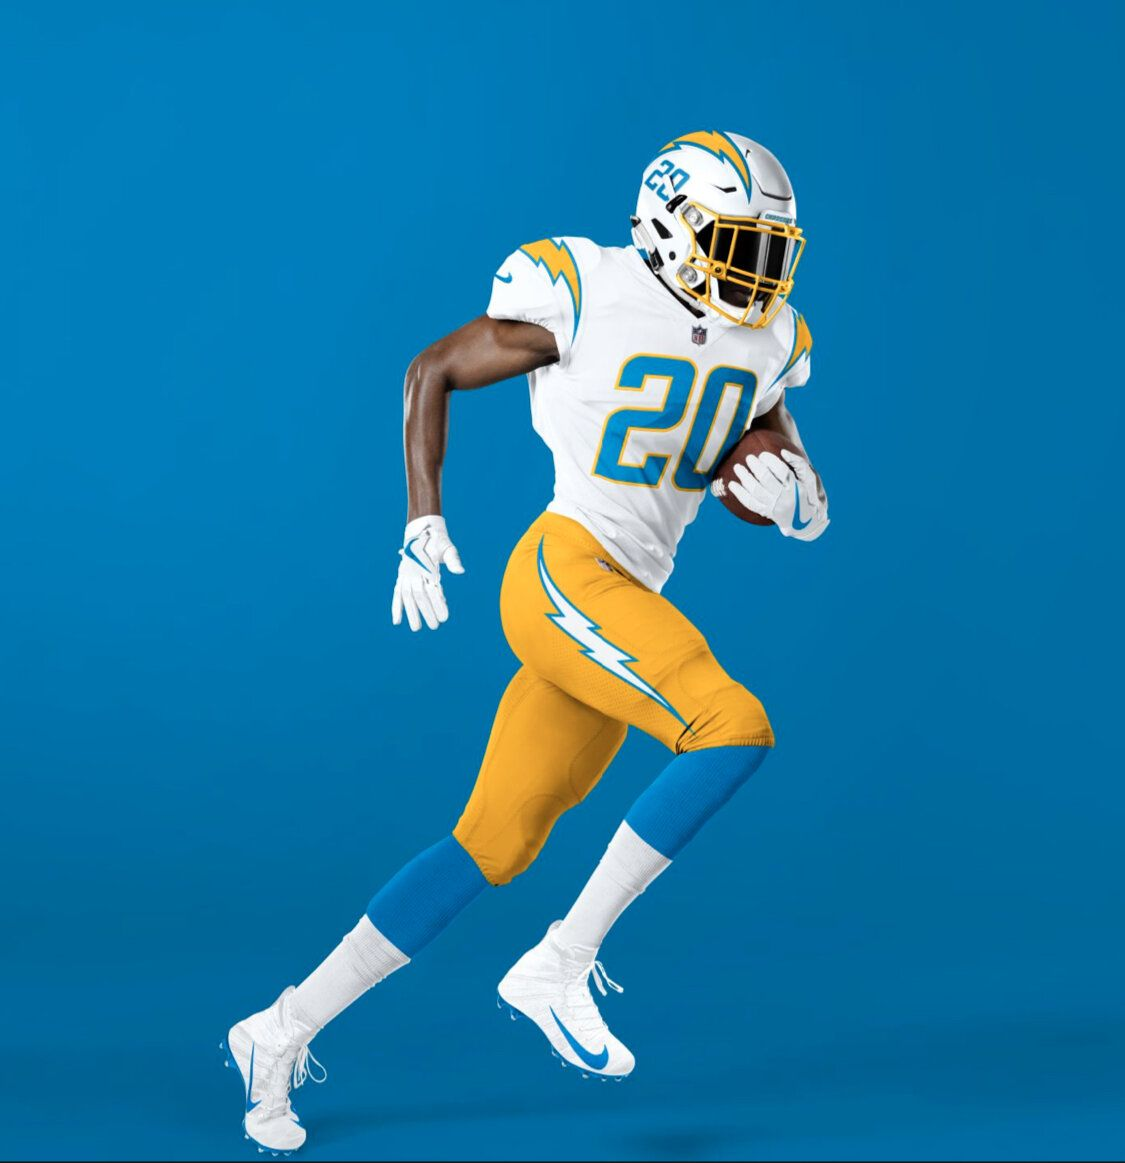 Los Angeles Chargers New Uniforms Uniswag In 2020 Los Angeles Chargers Color Rush Uniforms Los Angeles